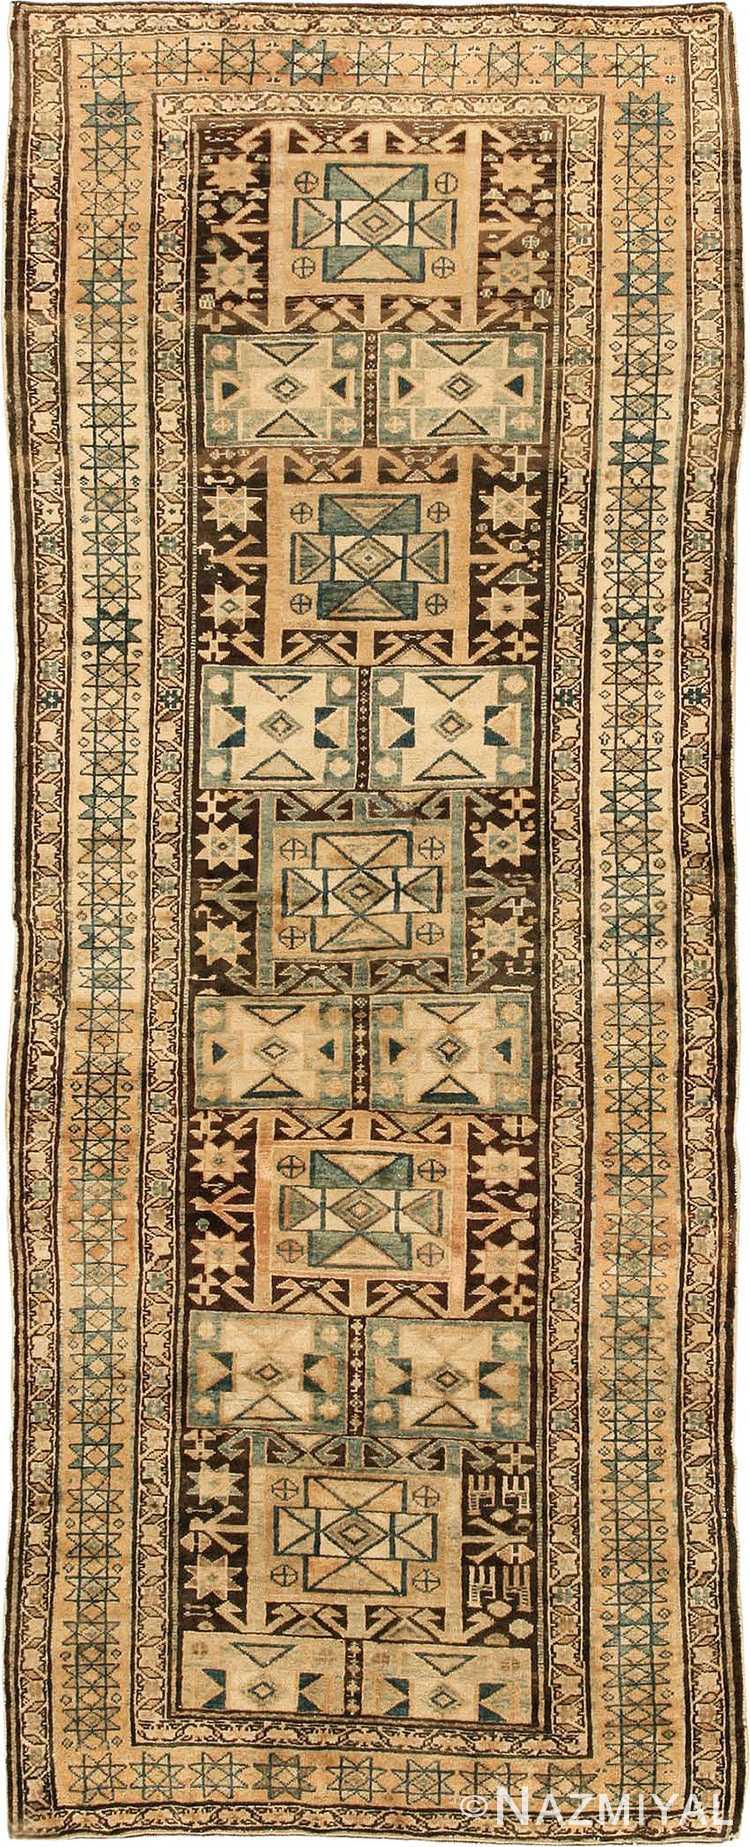 Brown Earth Tone Tribal Antique Persian Malayer Runner Rug #43059 by Nazmiyal Antique Rugs